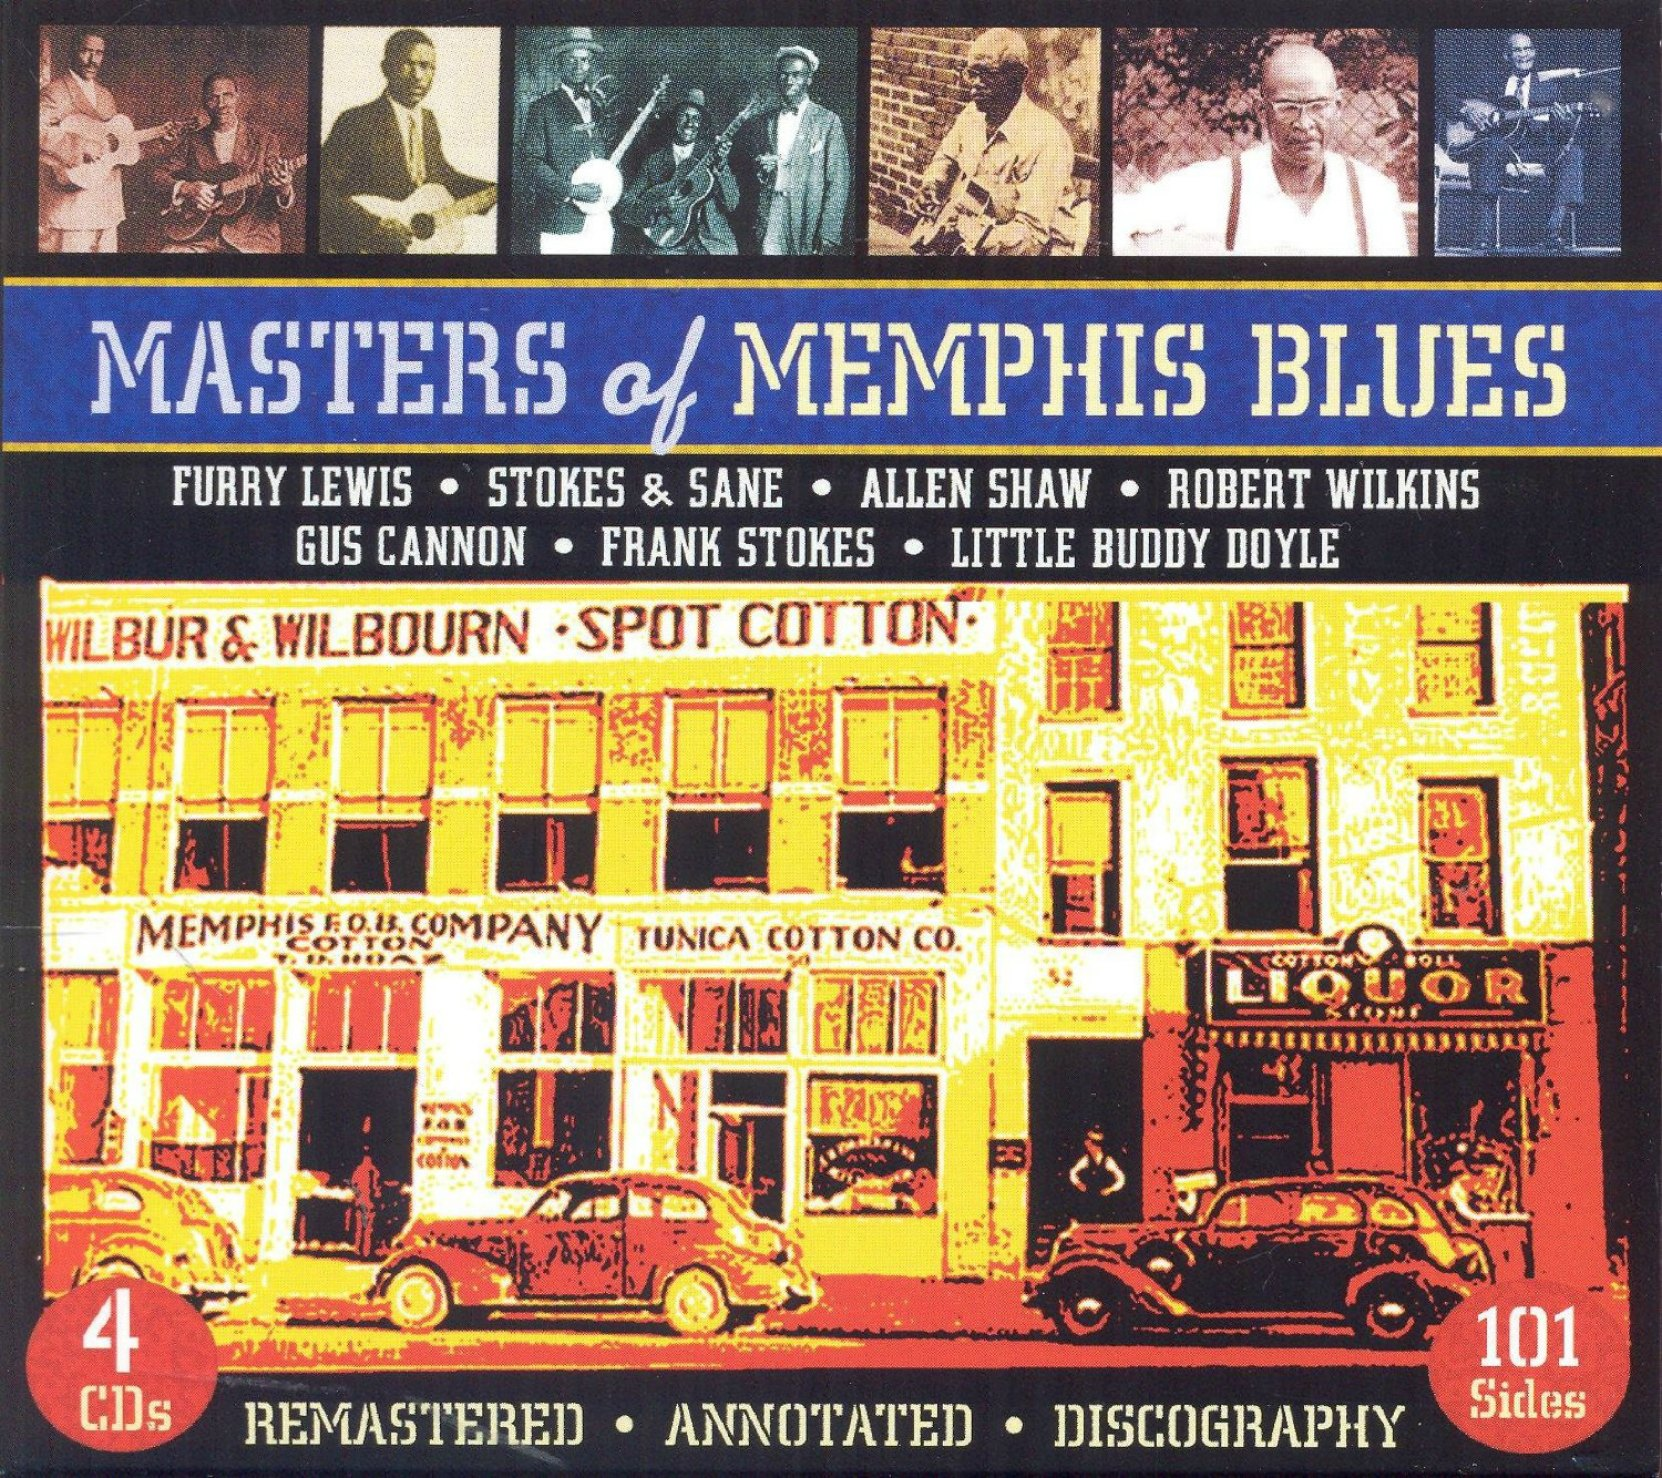 Masters of Memphis Blues, on JSP Records, CD box set cover